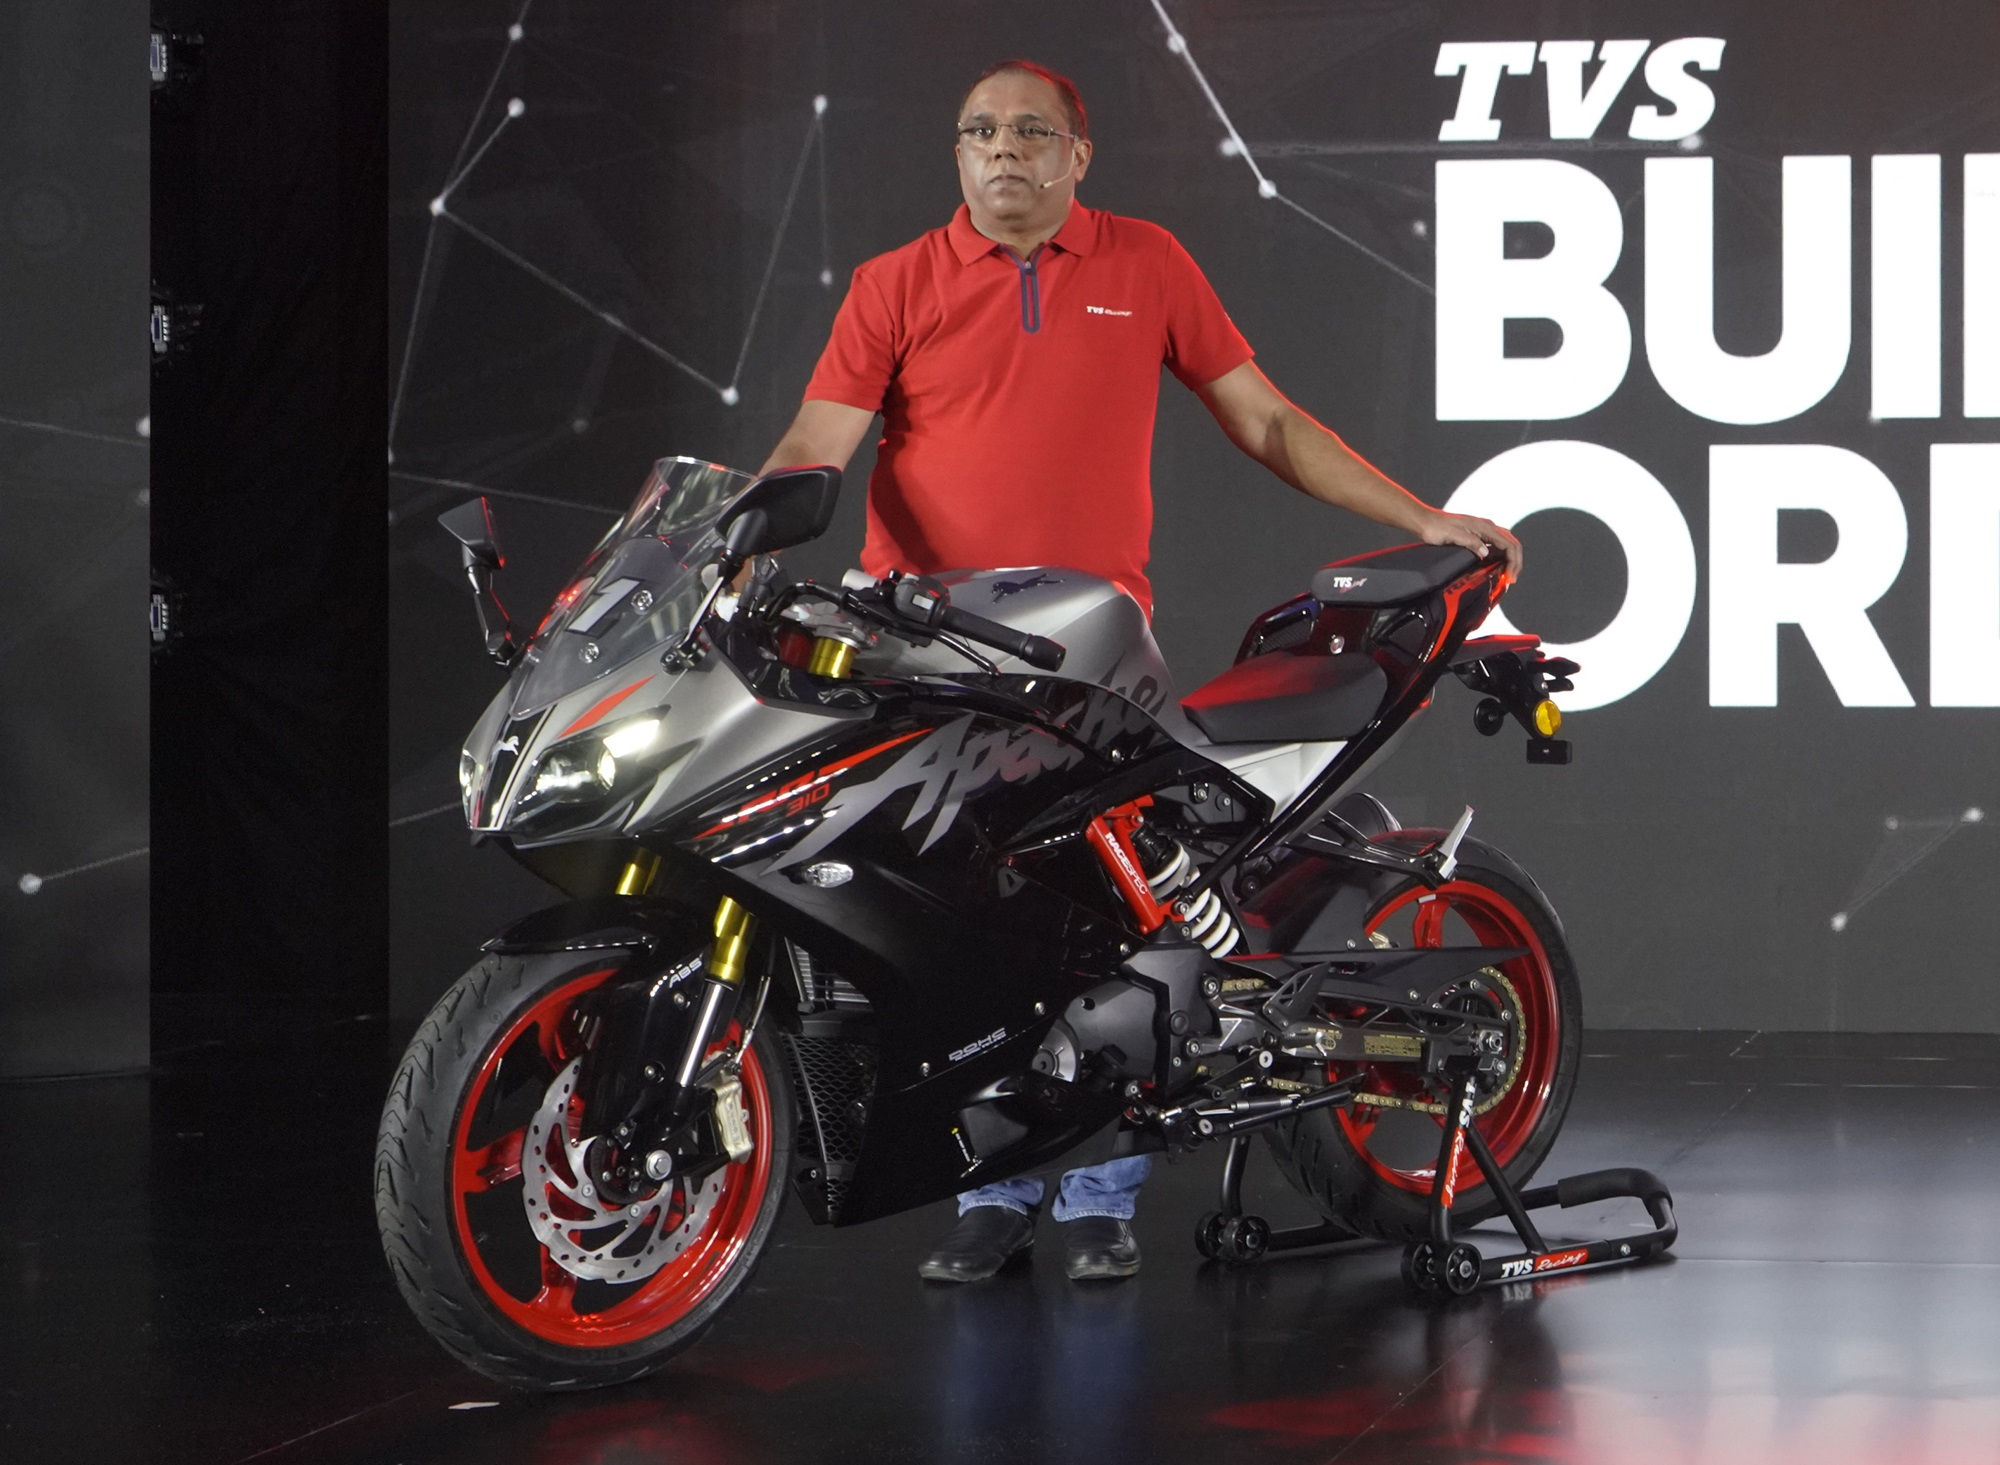 2021 TVS Apache RR 310 launched; First bike in TVS's Built To Order platform